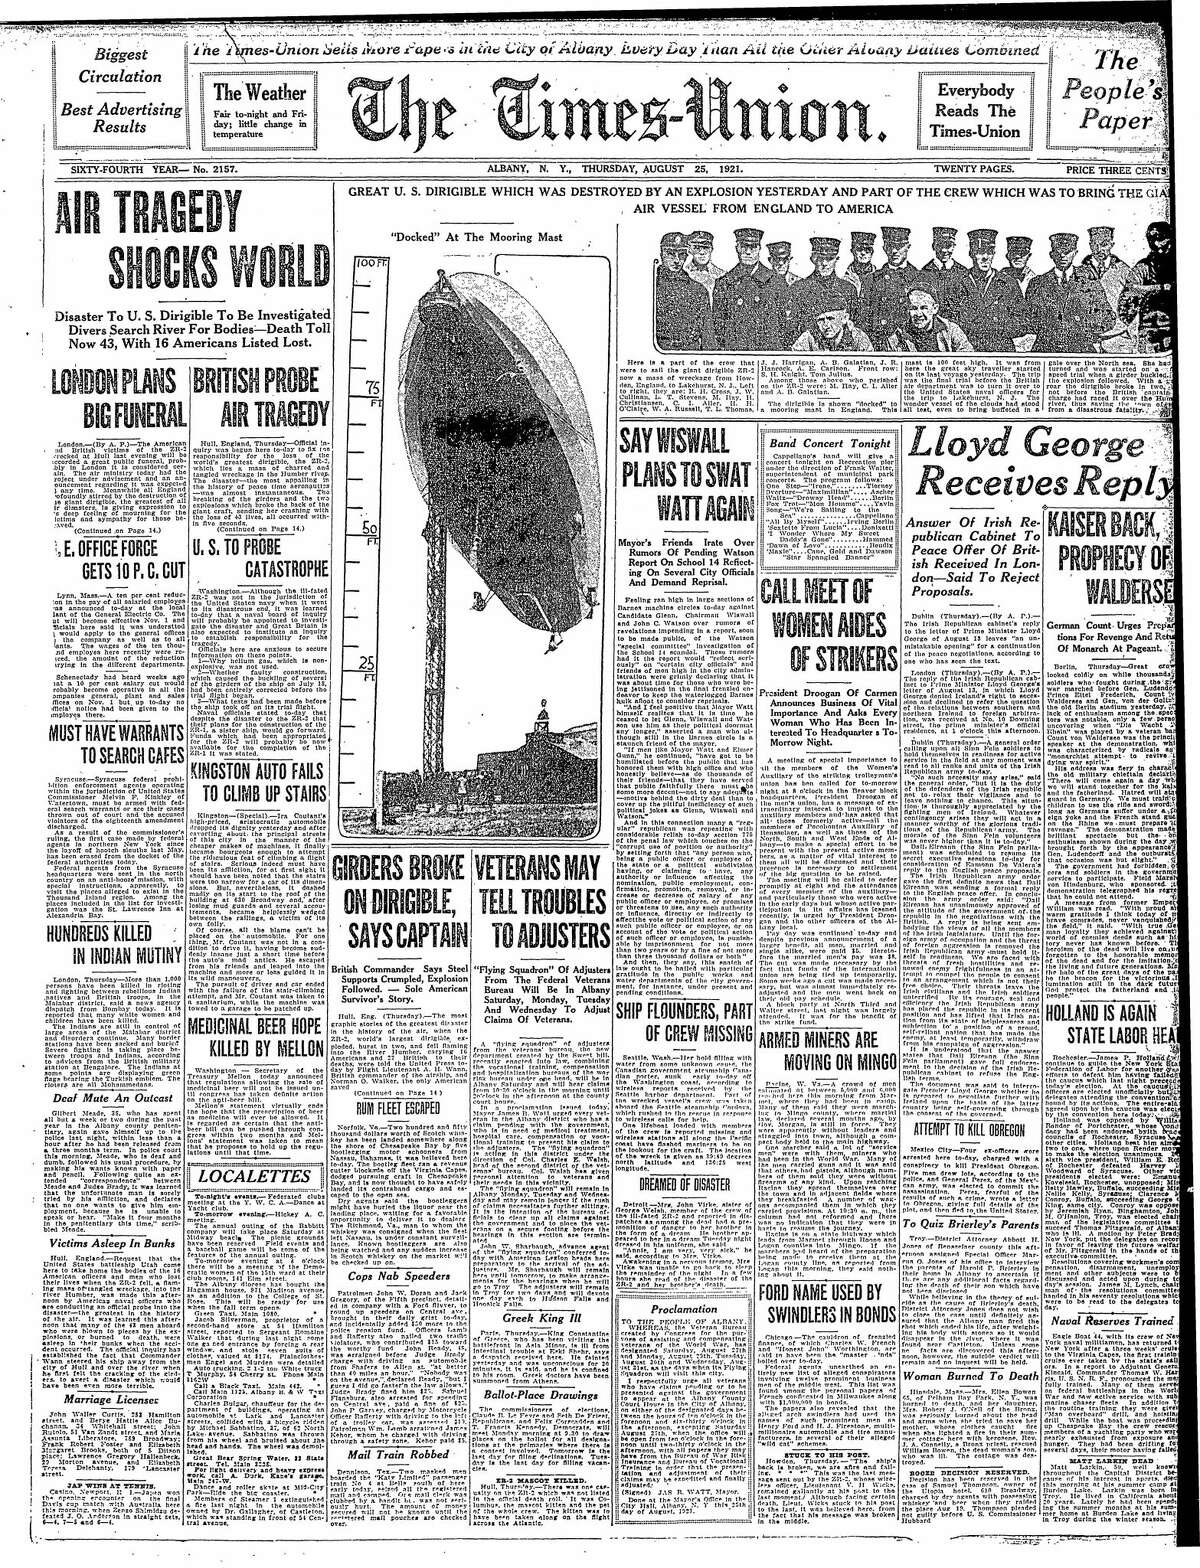 Front page of the Times Union, Aug. 25, 1921.